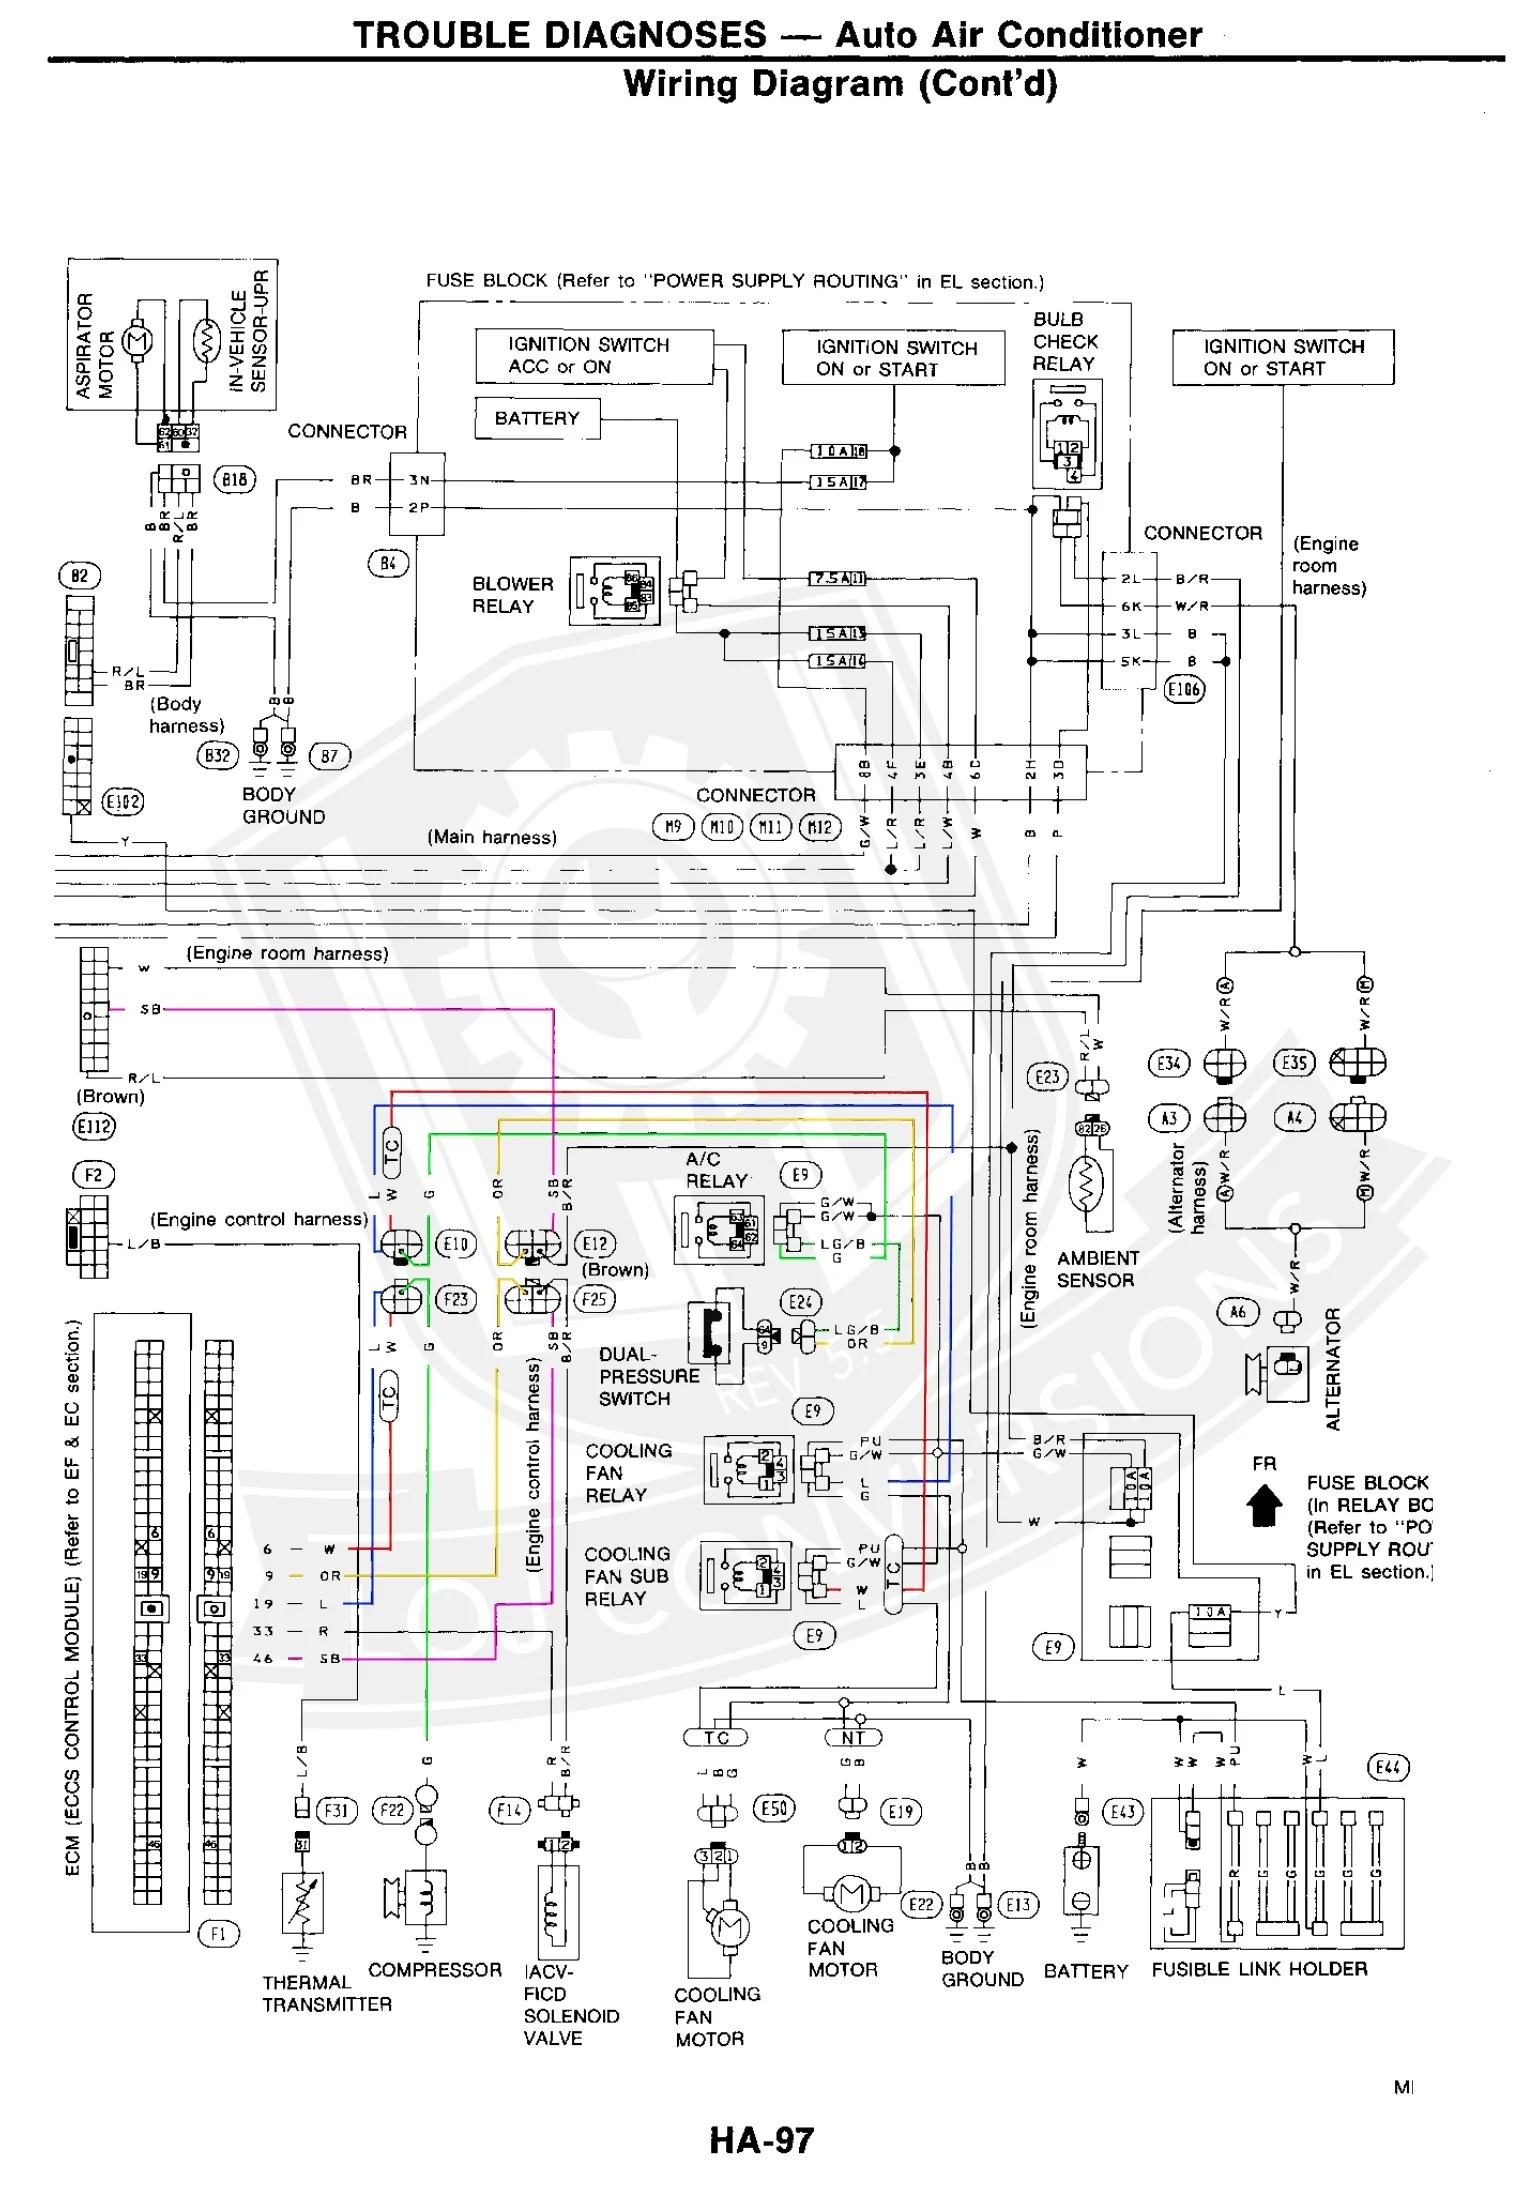 1977 280z fuse box wiring diagram1977 280z fuse box today wiring diagram [ 1515 x 2194 Pixel ]